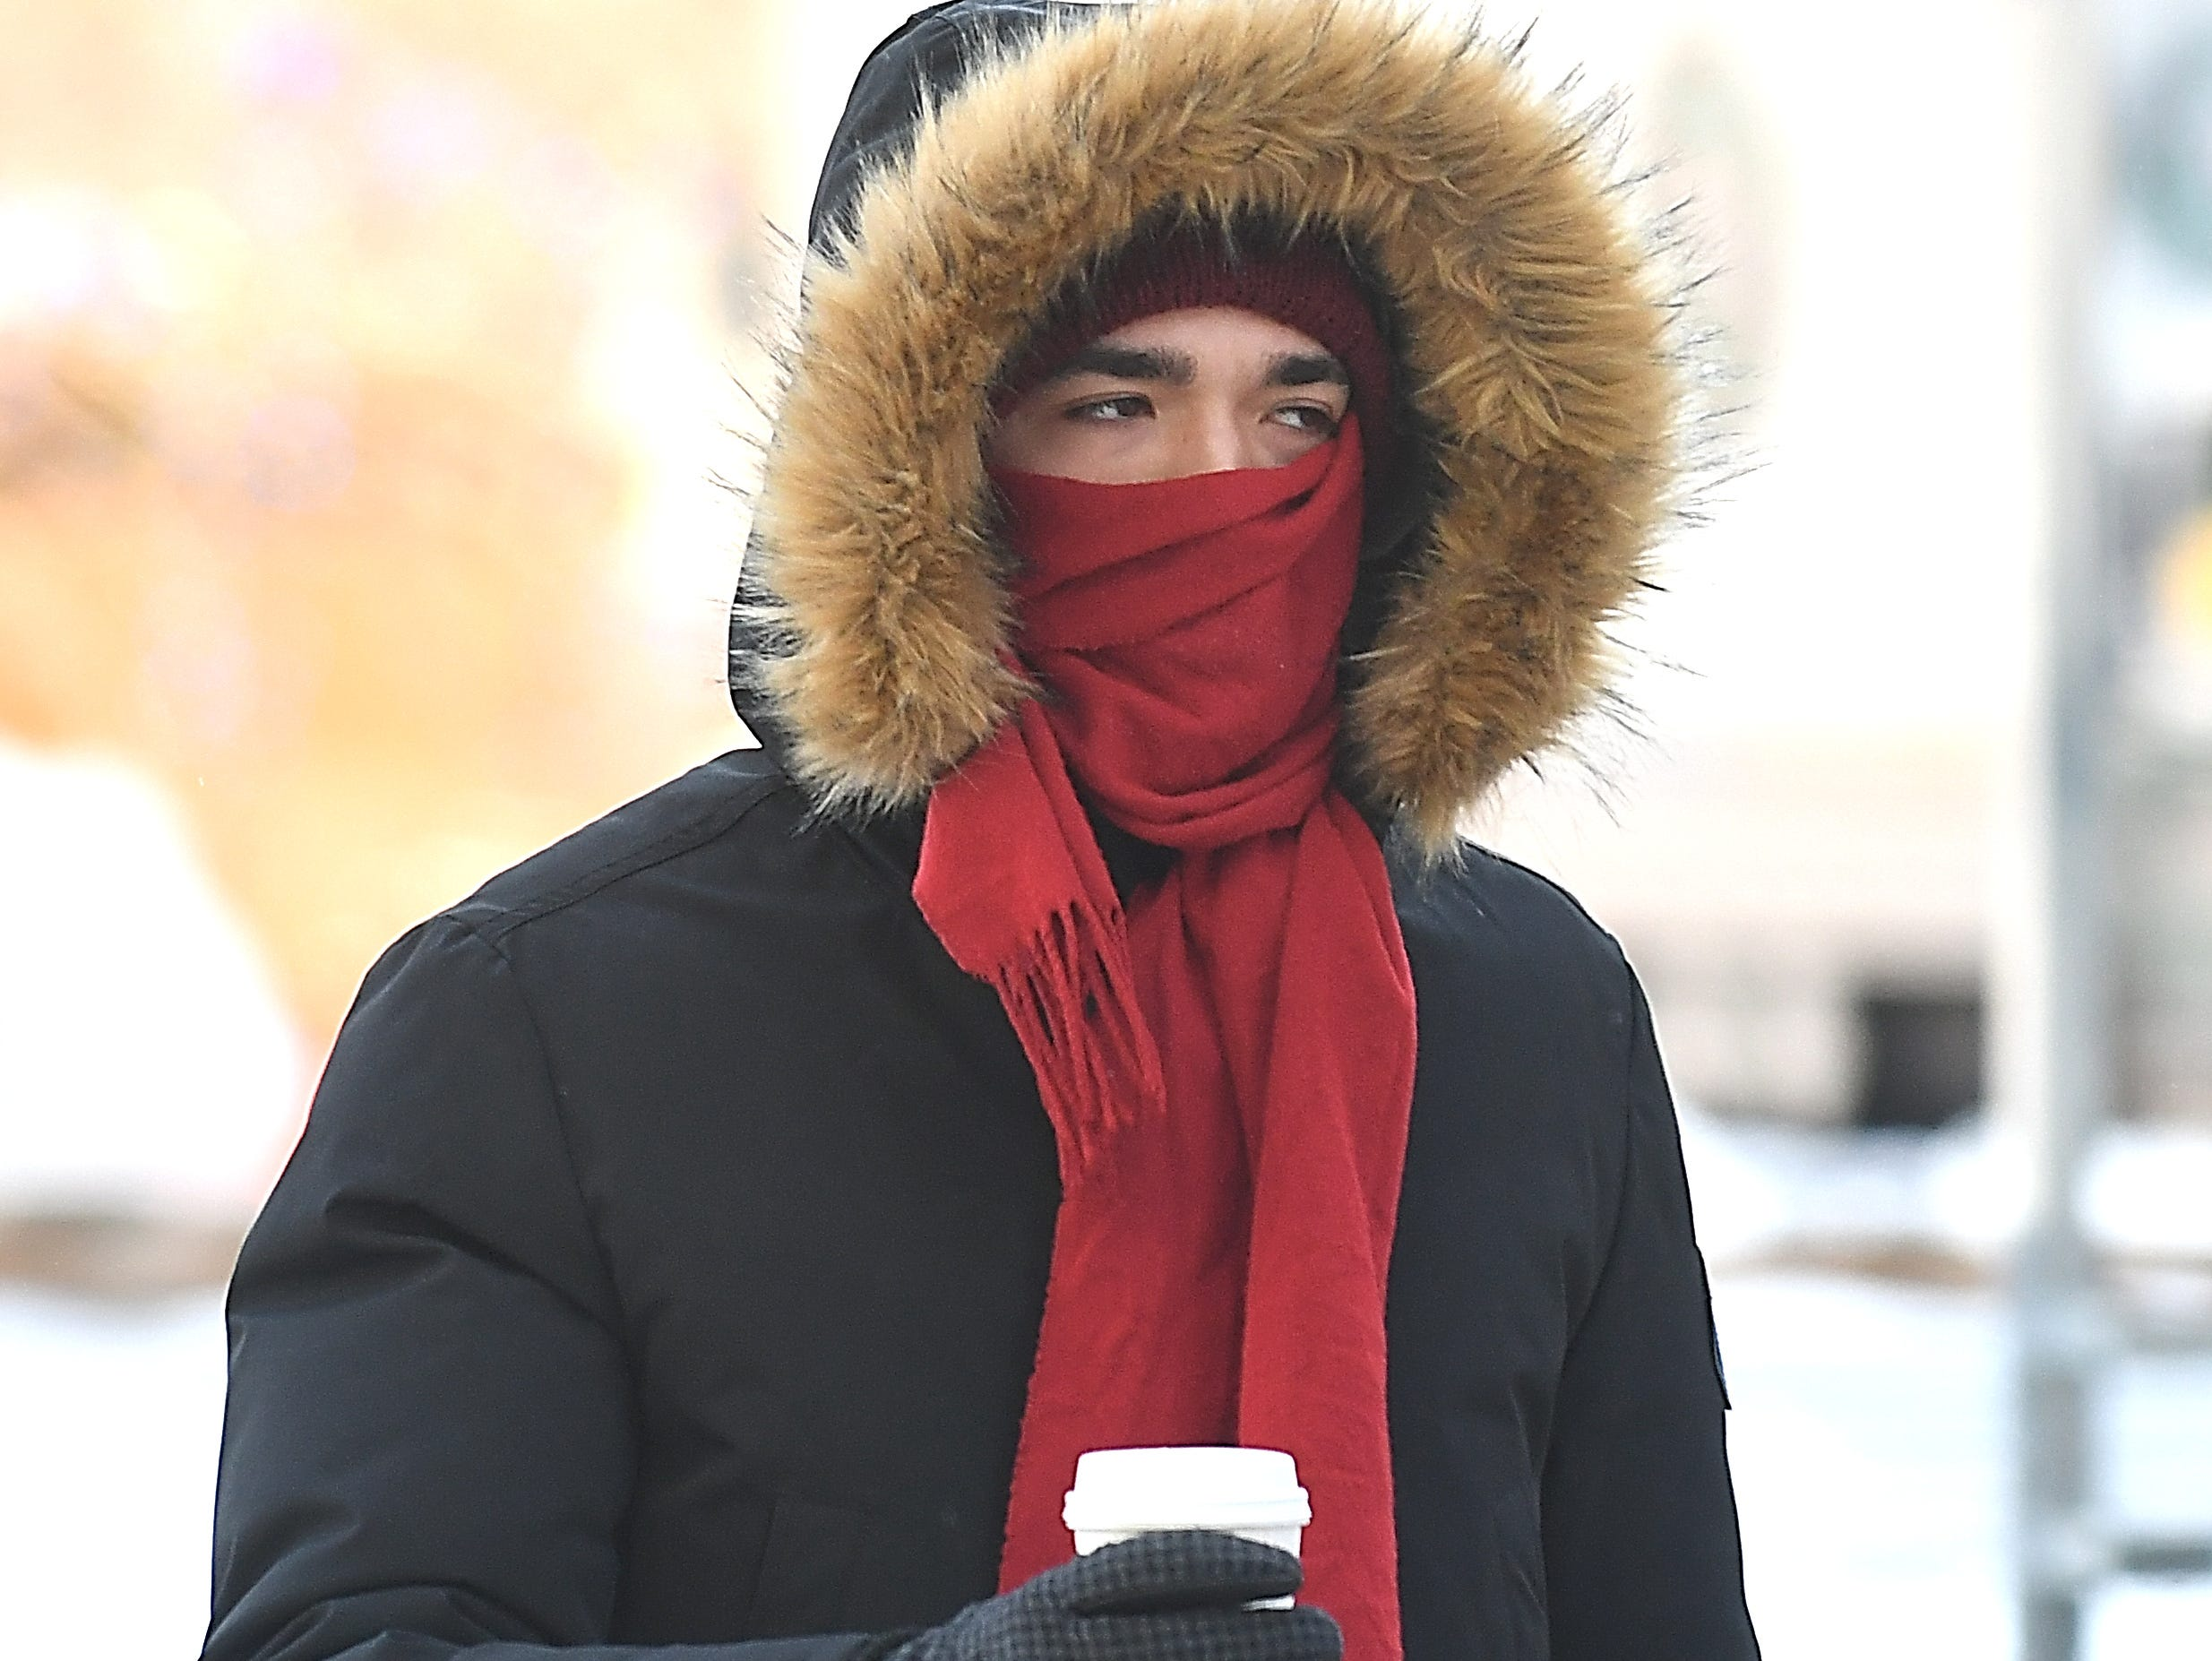 Timothy Smith braves the cold for a cup of coffee on Wednesday in Detroit.